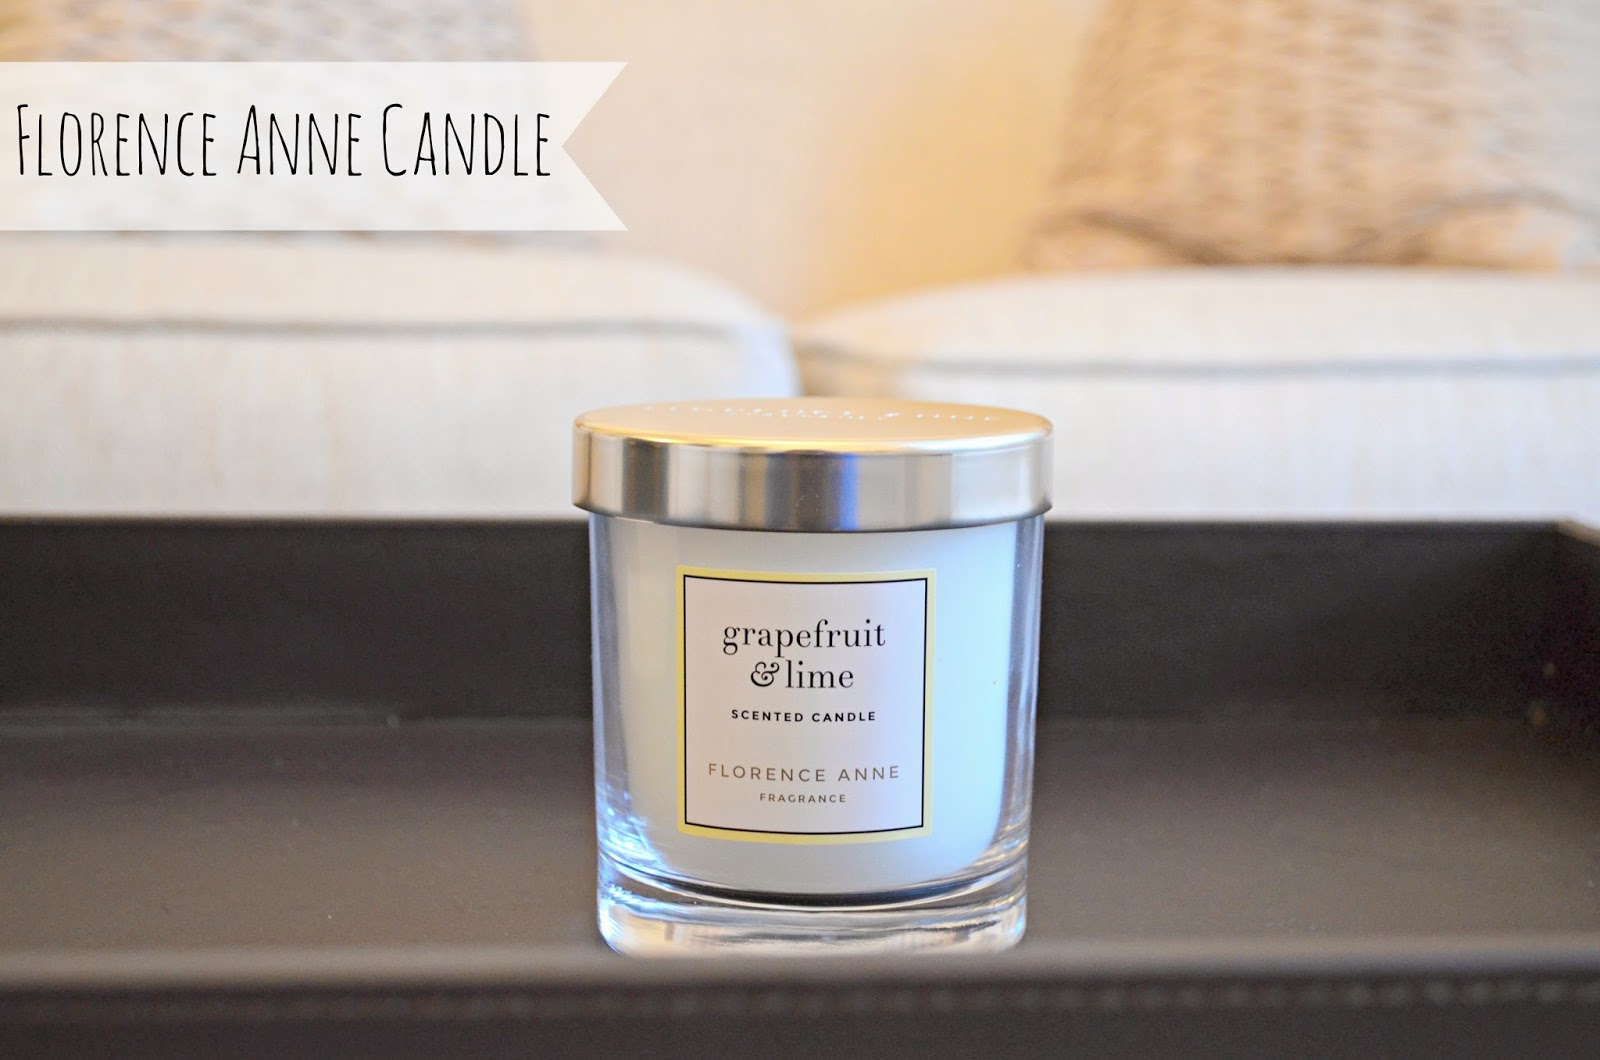 Florence Anne Candles